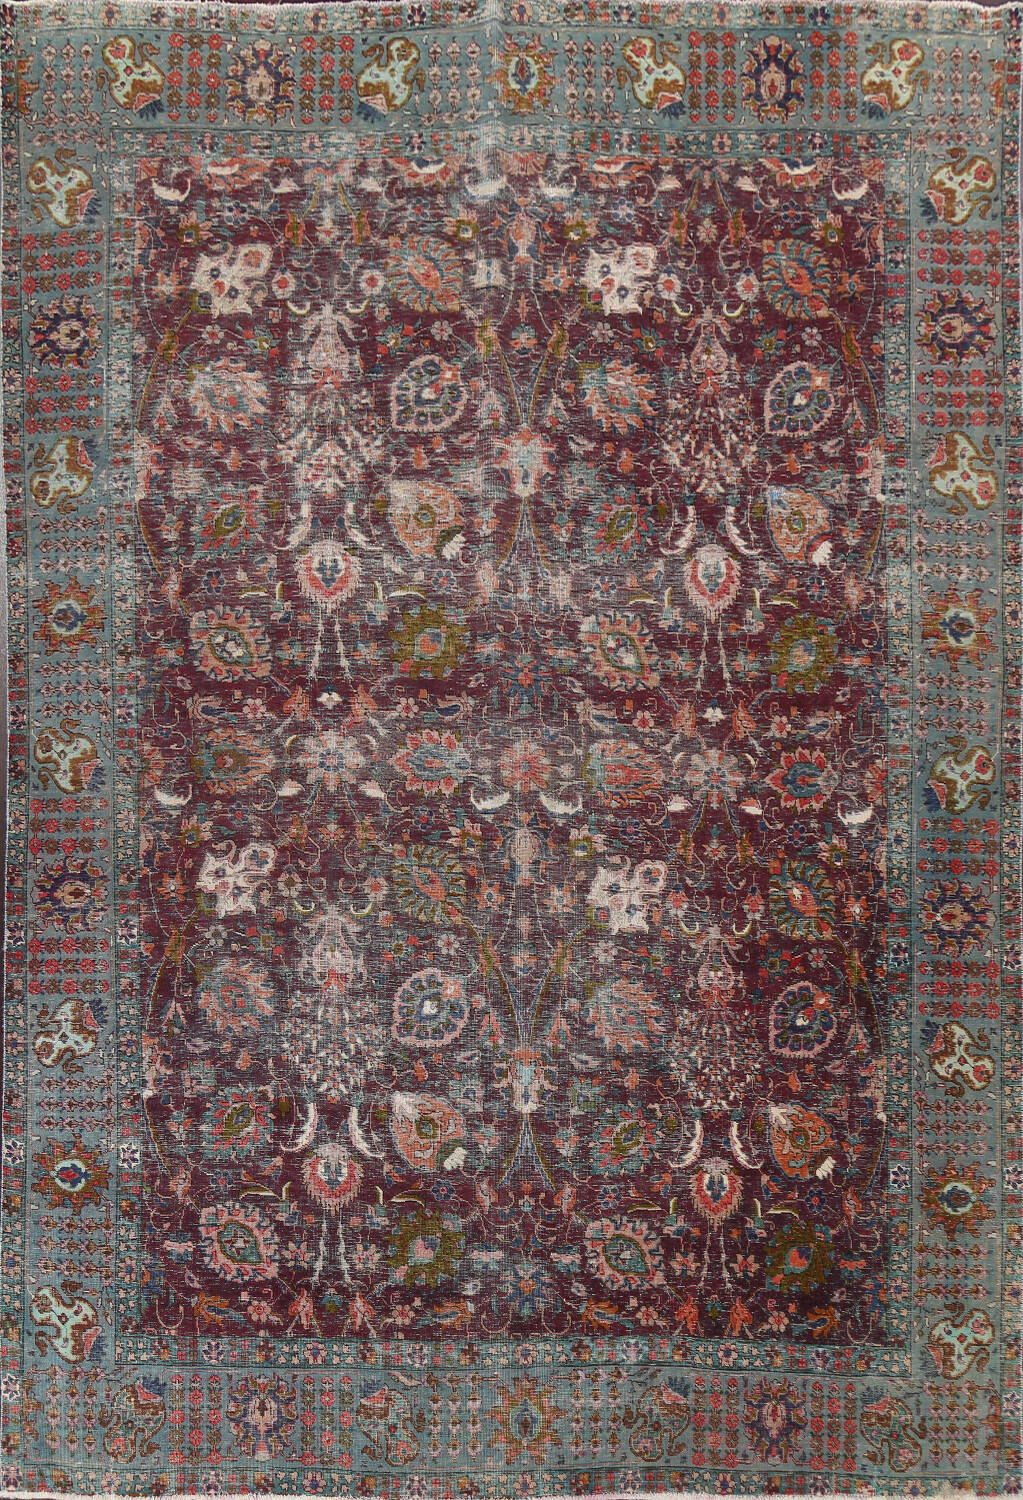 Antique Over-Dyed Tabriz Persian Area Rug 9x12 image 1